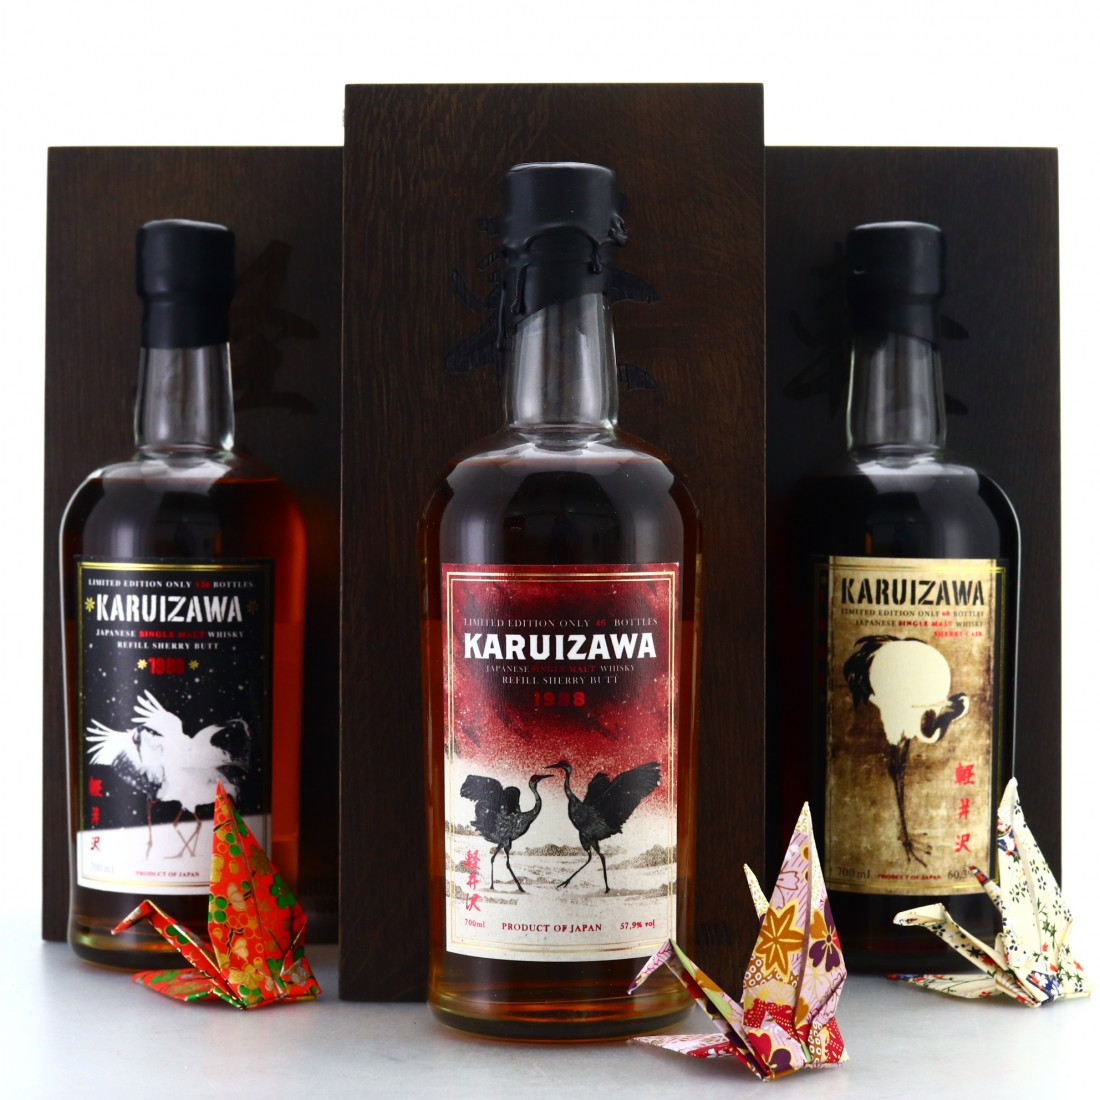 Karuizawa 1988 Trilogy 3 x 70cl / Finest Whisky Deluxe & Wealth Solutions